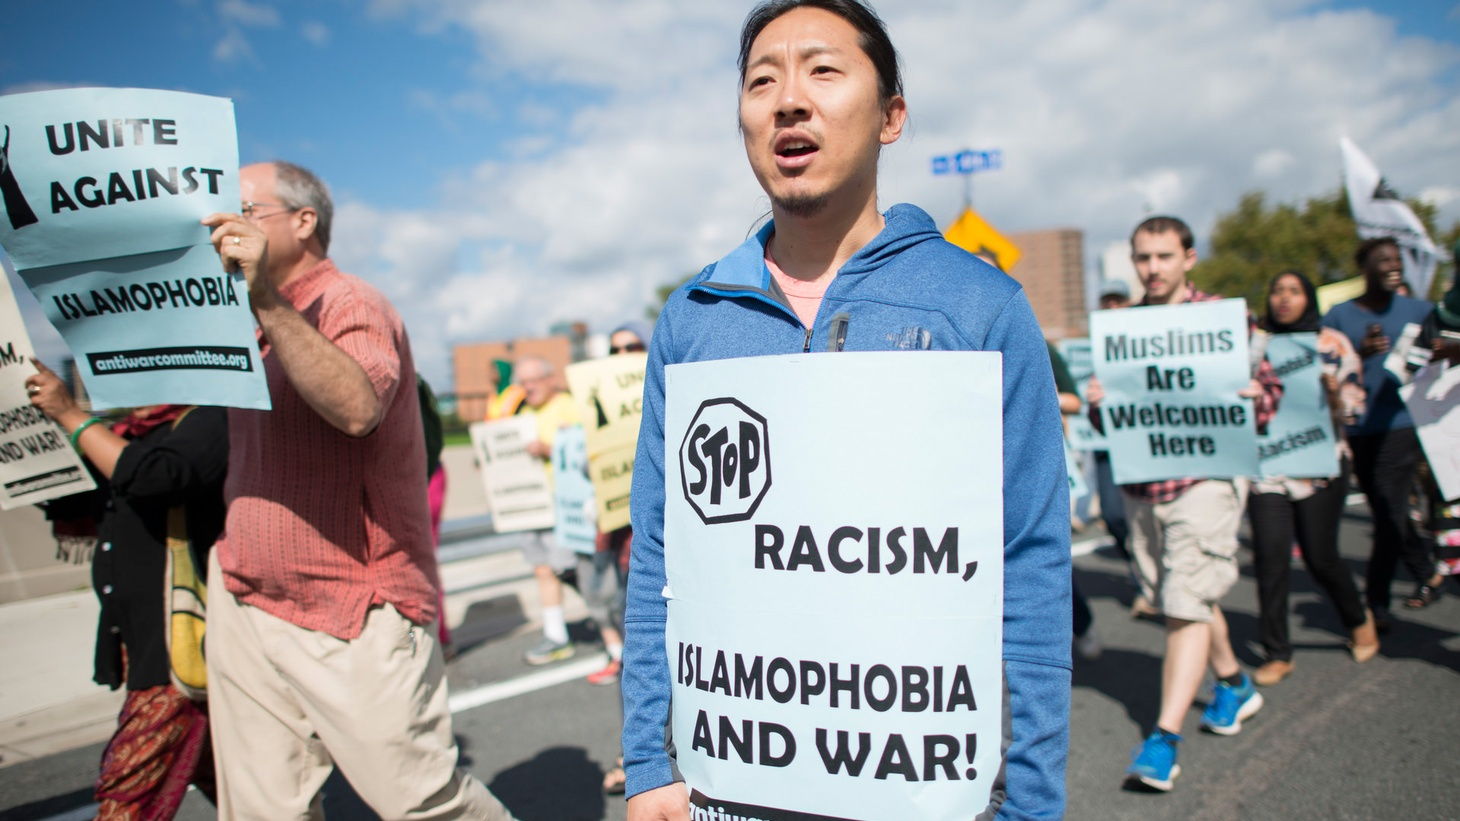 Studies show that political rhetoric can increase hostility, and hate crimes against Muslim Americans have been on the rise. Donald Trump has made that central to his campaign.Is Trump to blame?